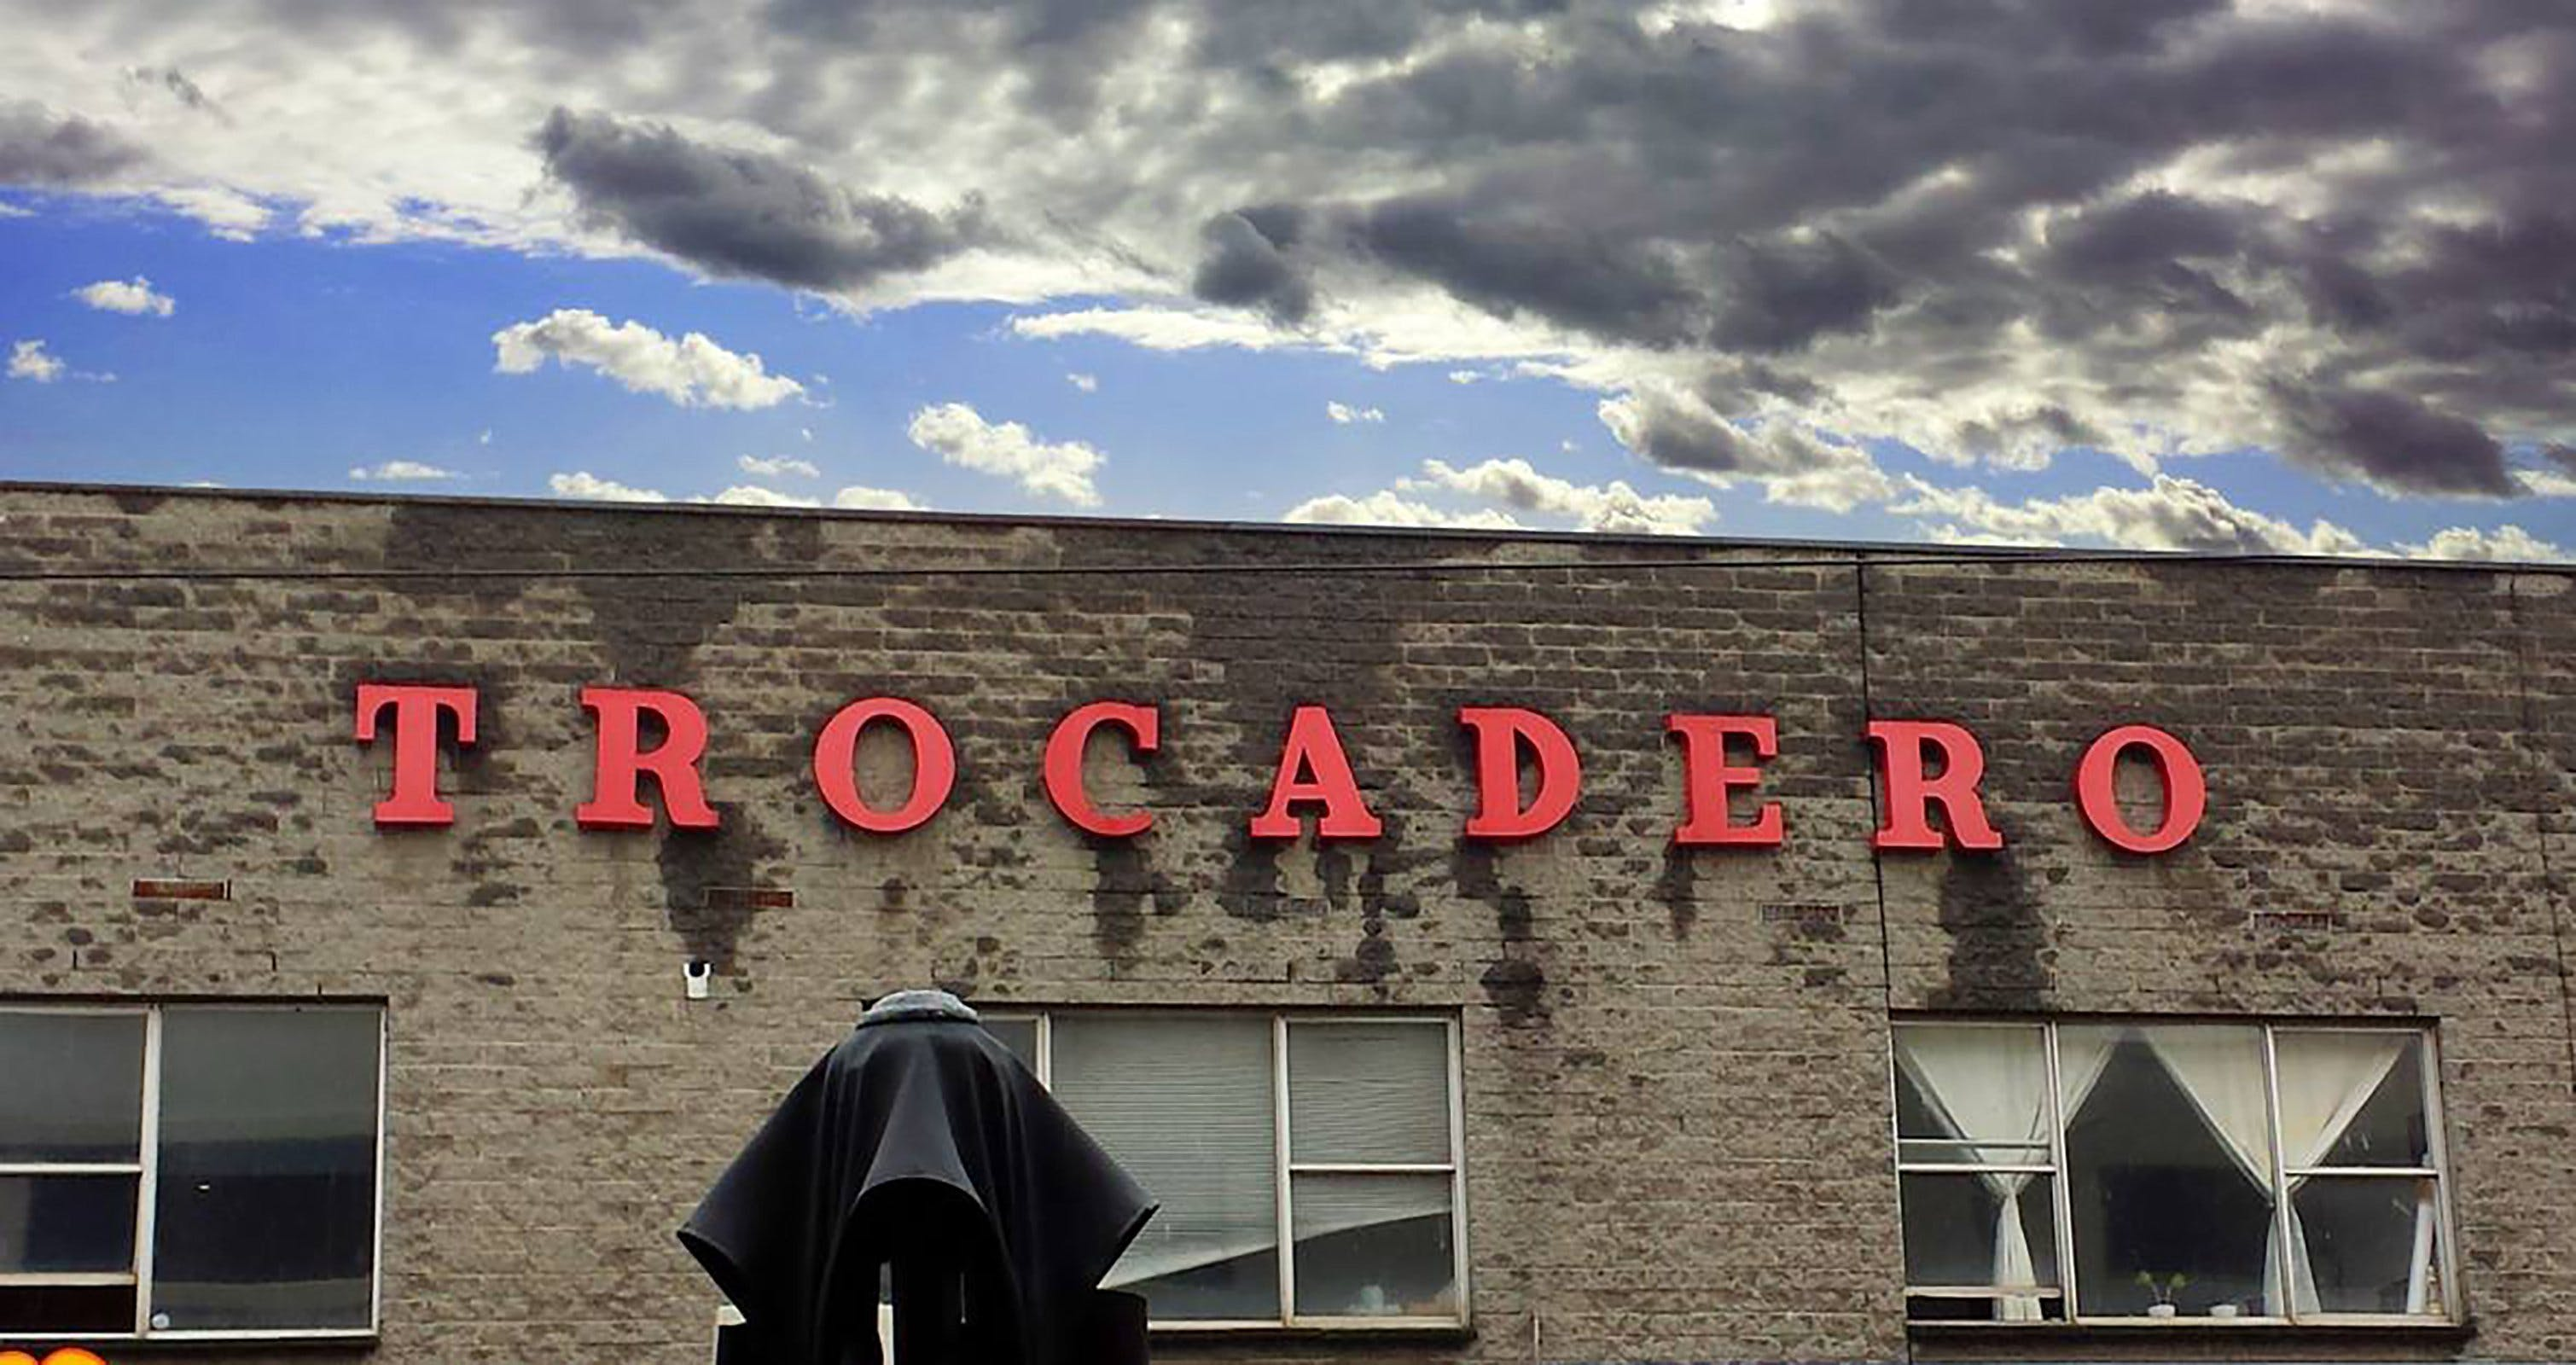 Trocadero Art Space - Find Attractions